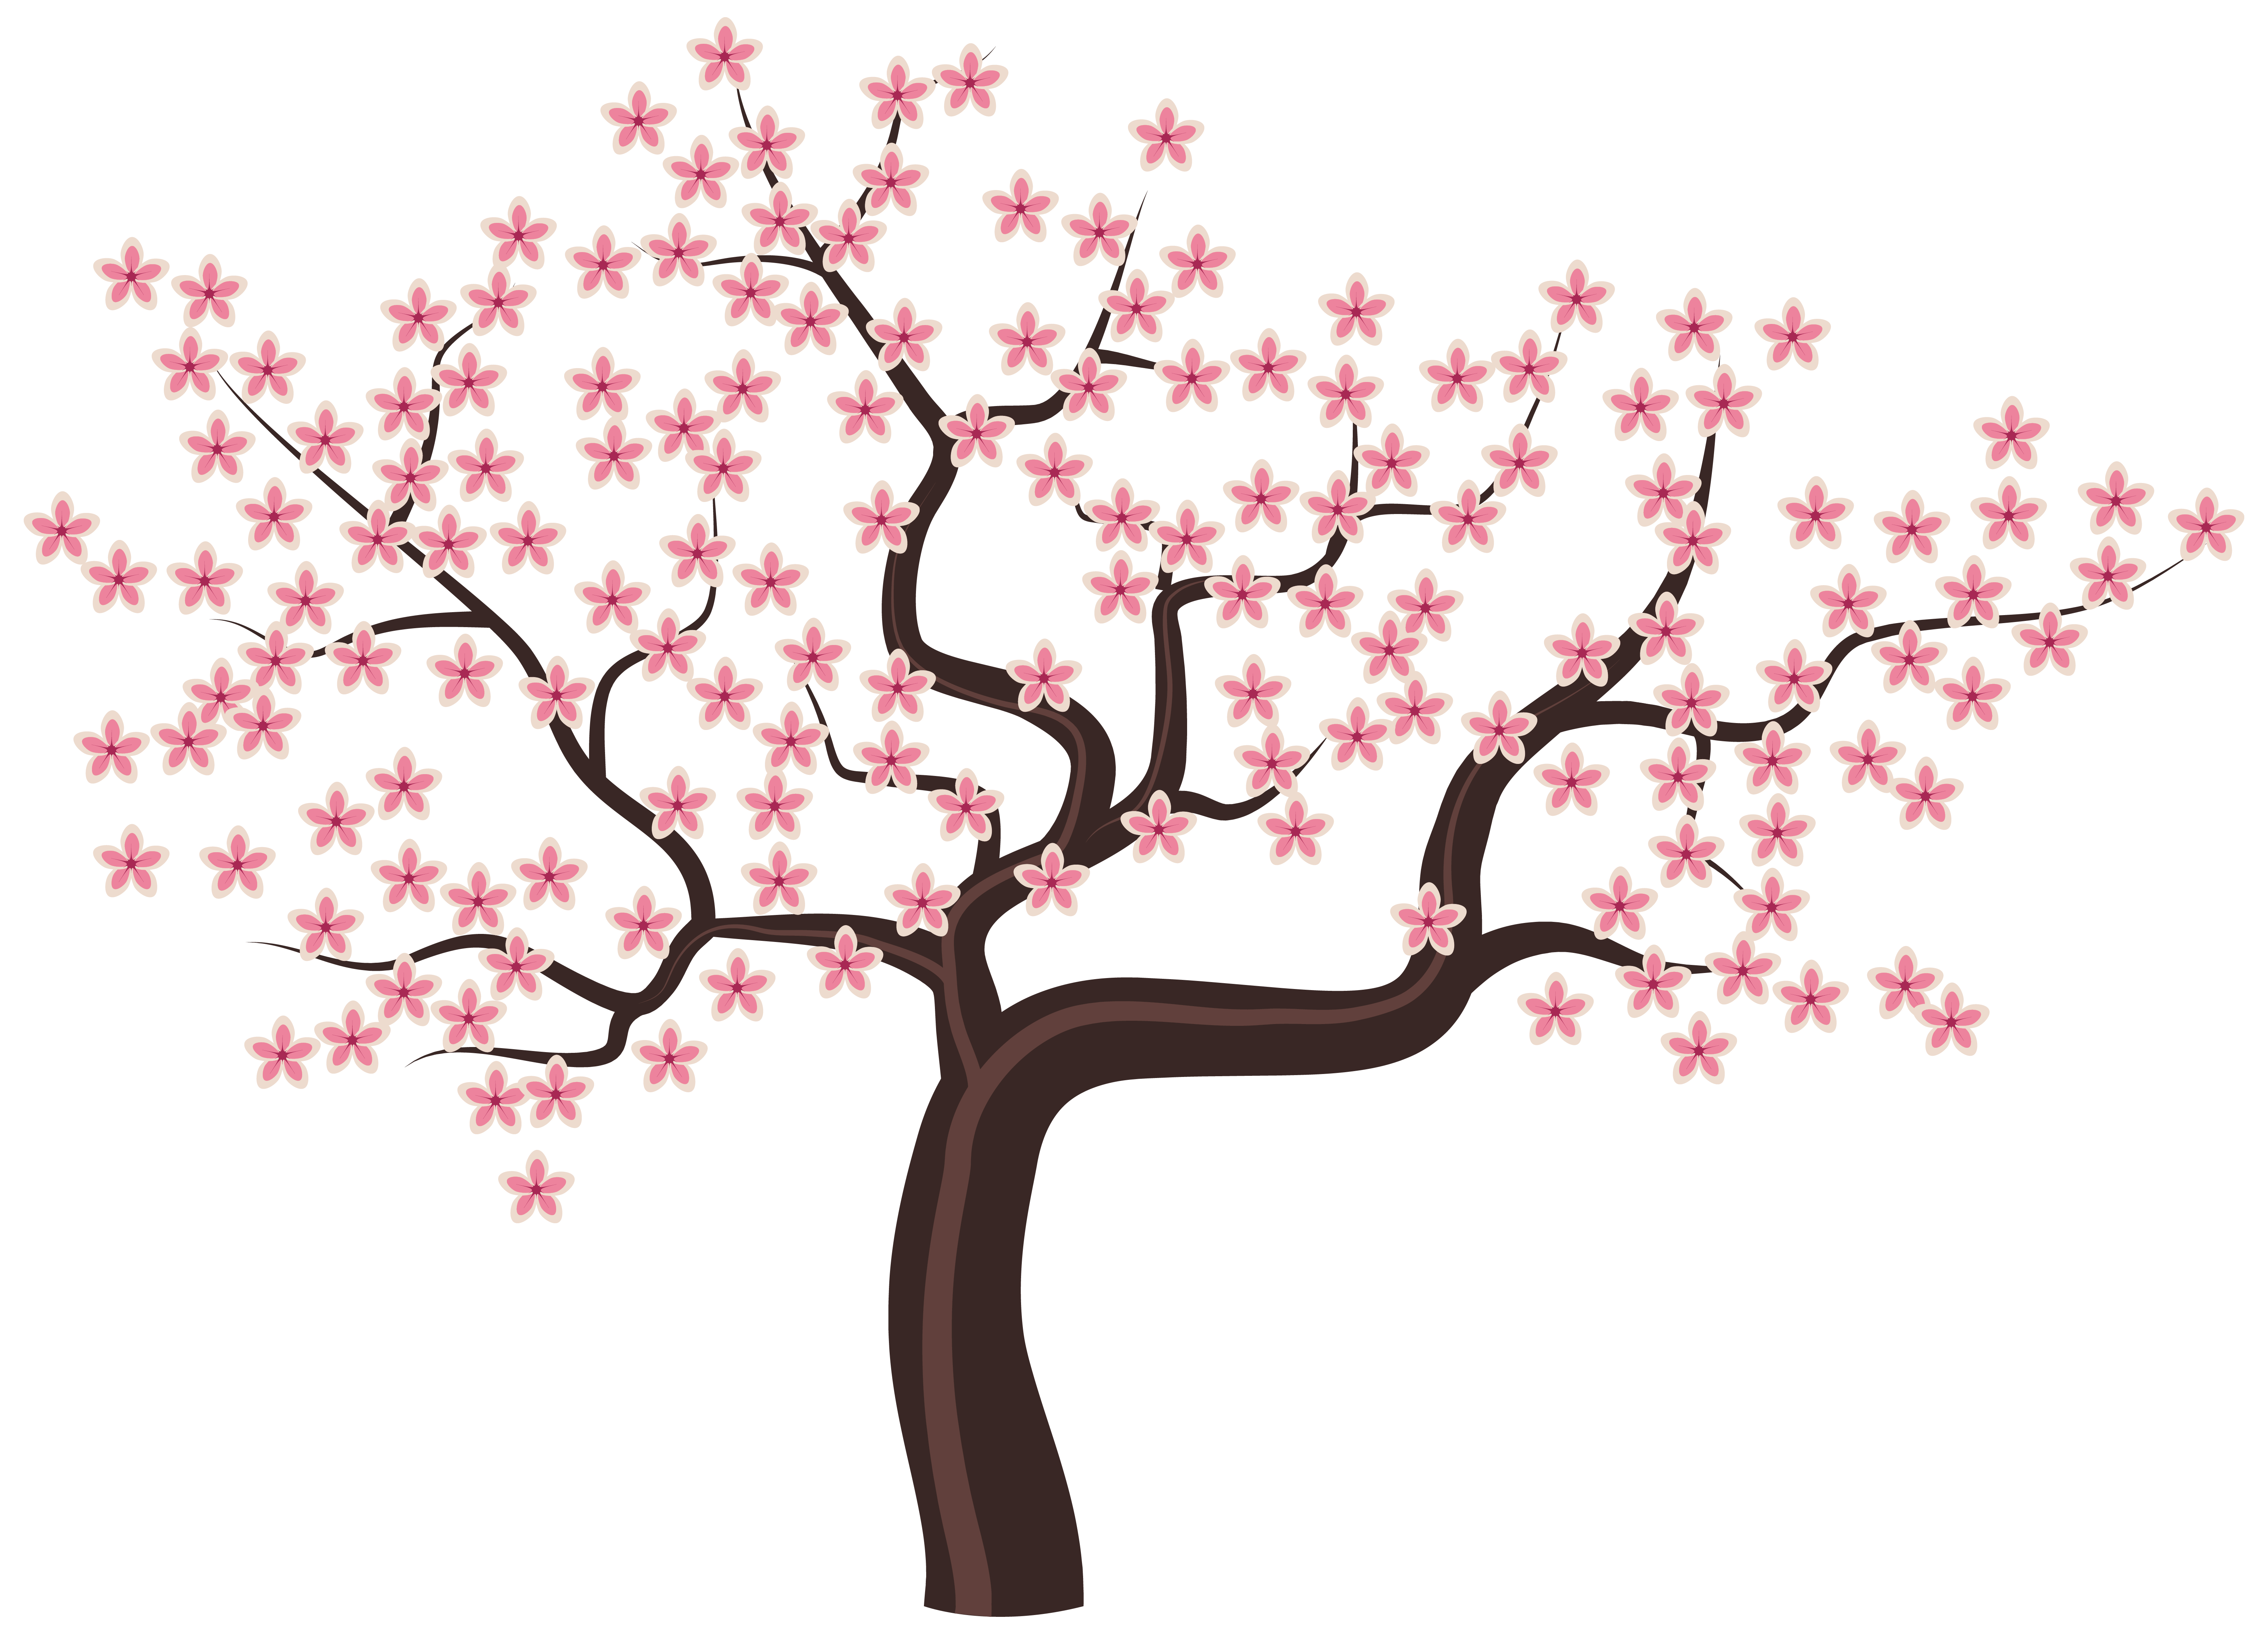 6215x4479 Blossom Clipart Flowering Tree